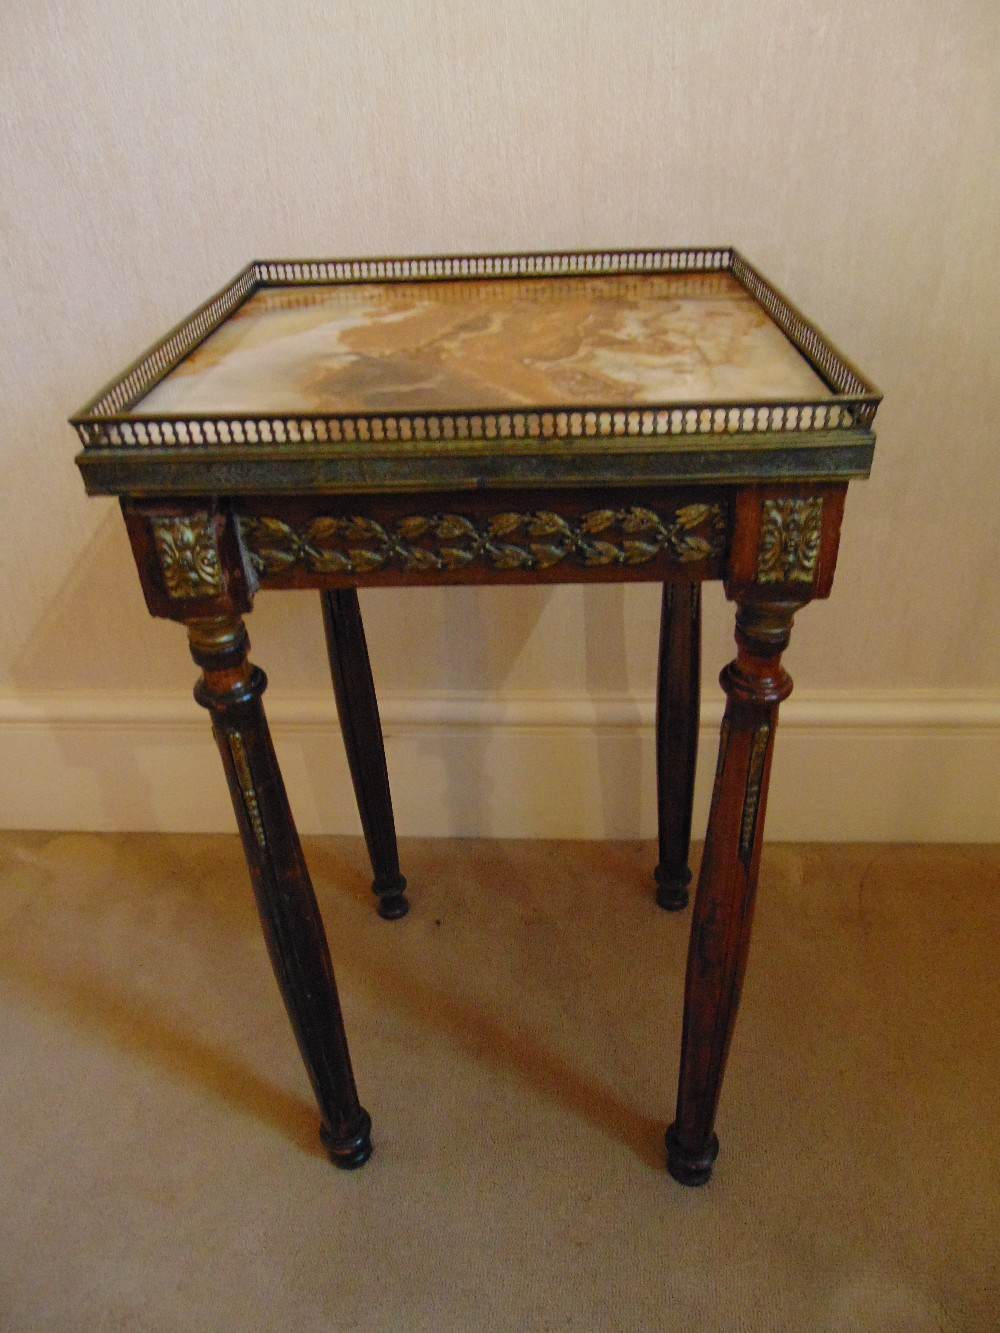 Lot 15 - A square gilded metal and marble side table with galleried top